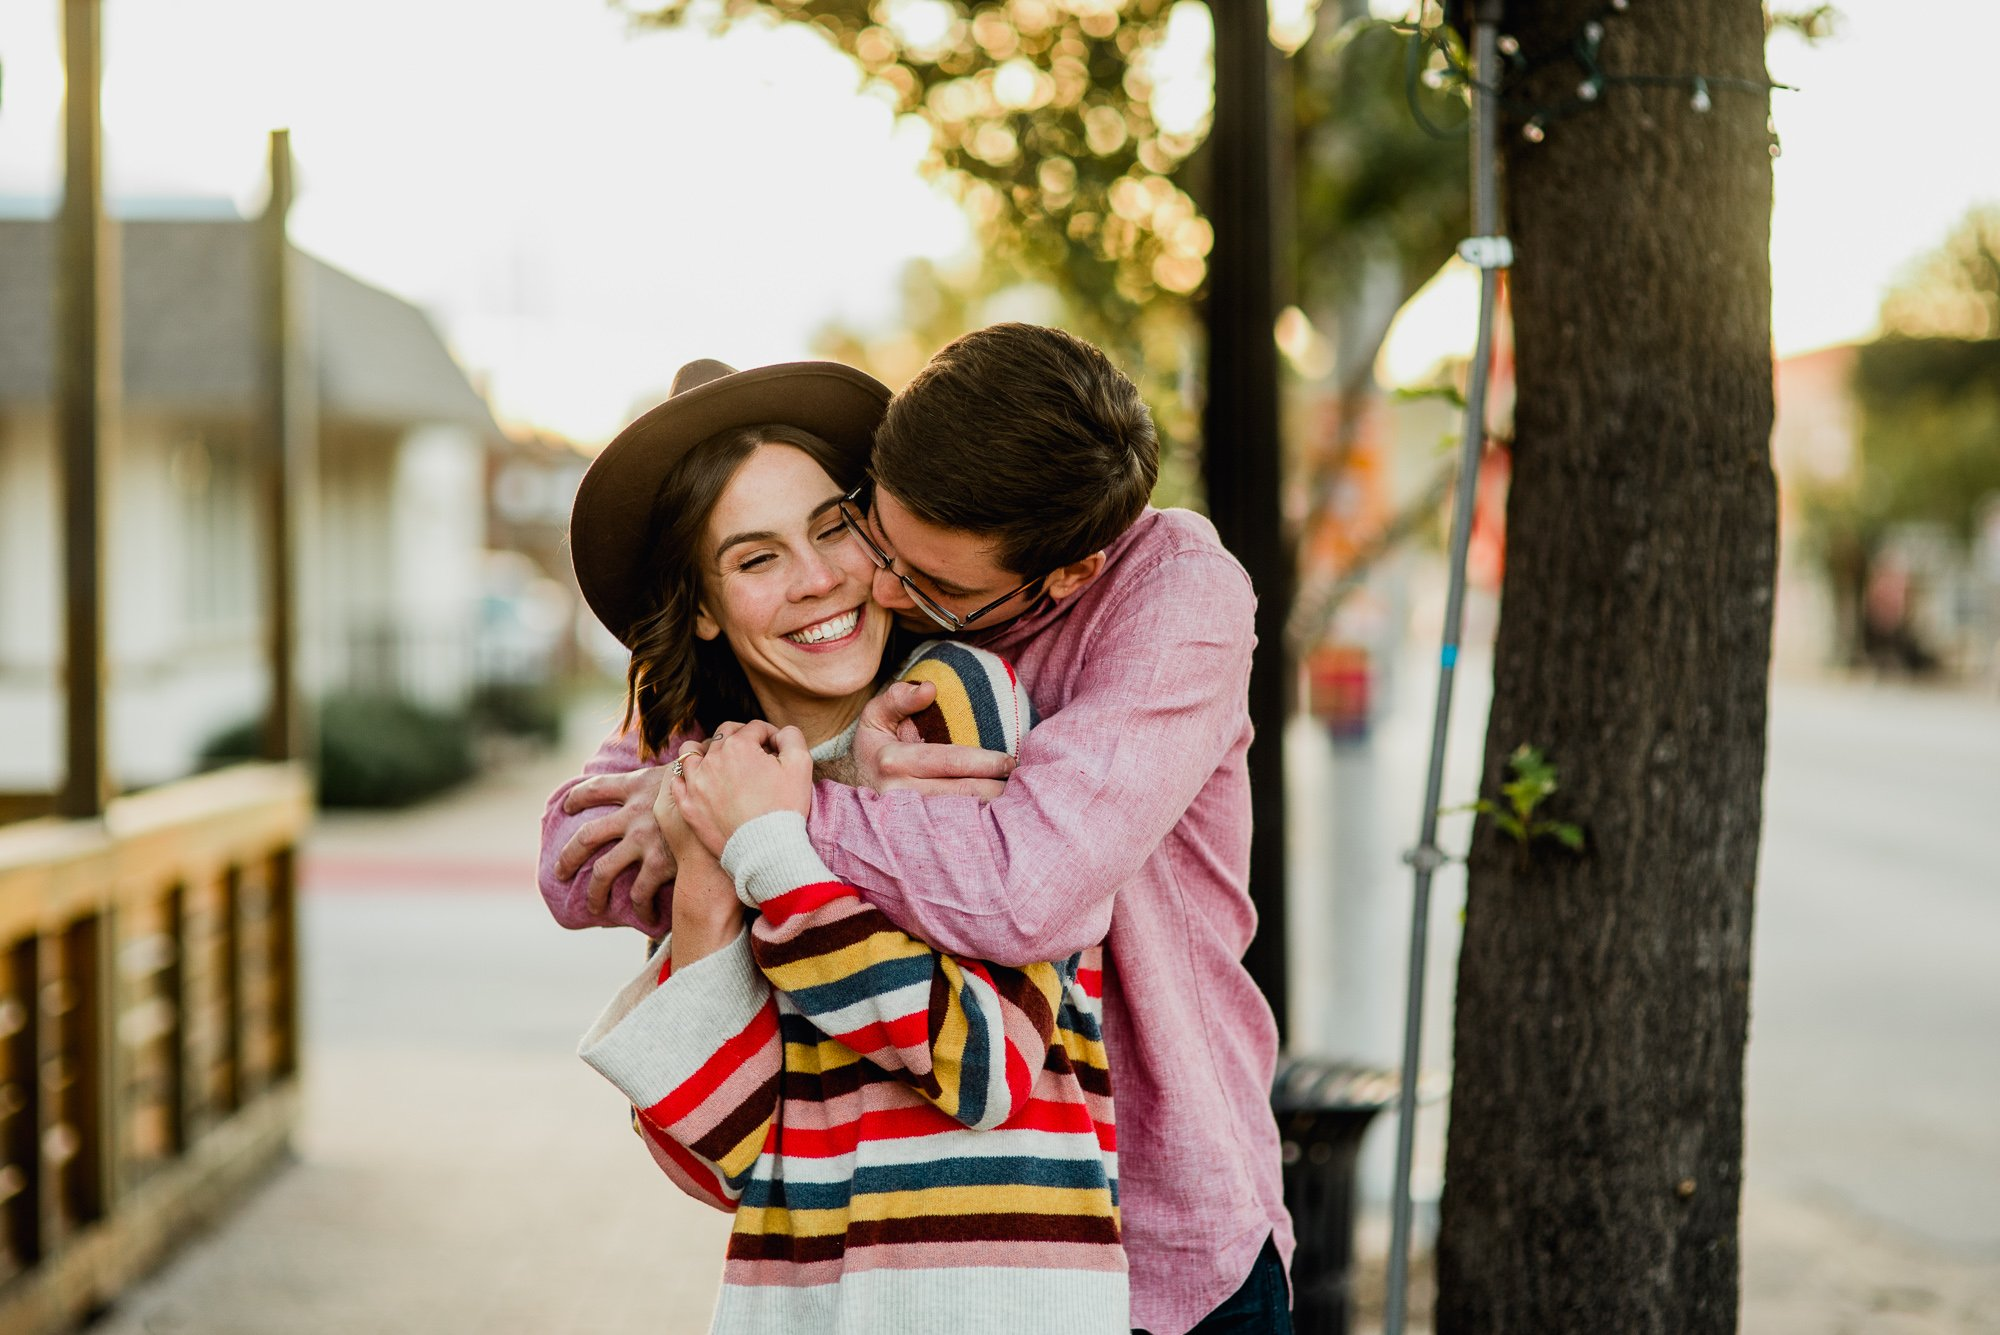 lindsey and jordan snuggle up during their fall engagement photos on magnolia avenue in fort worth texas